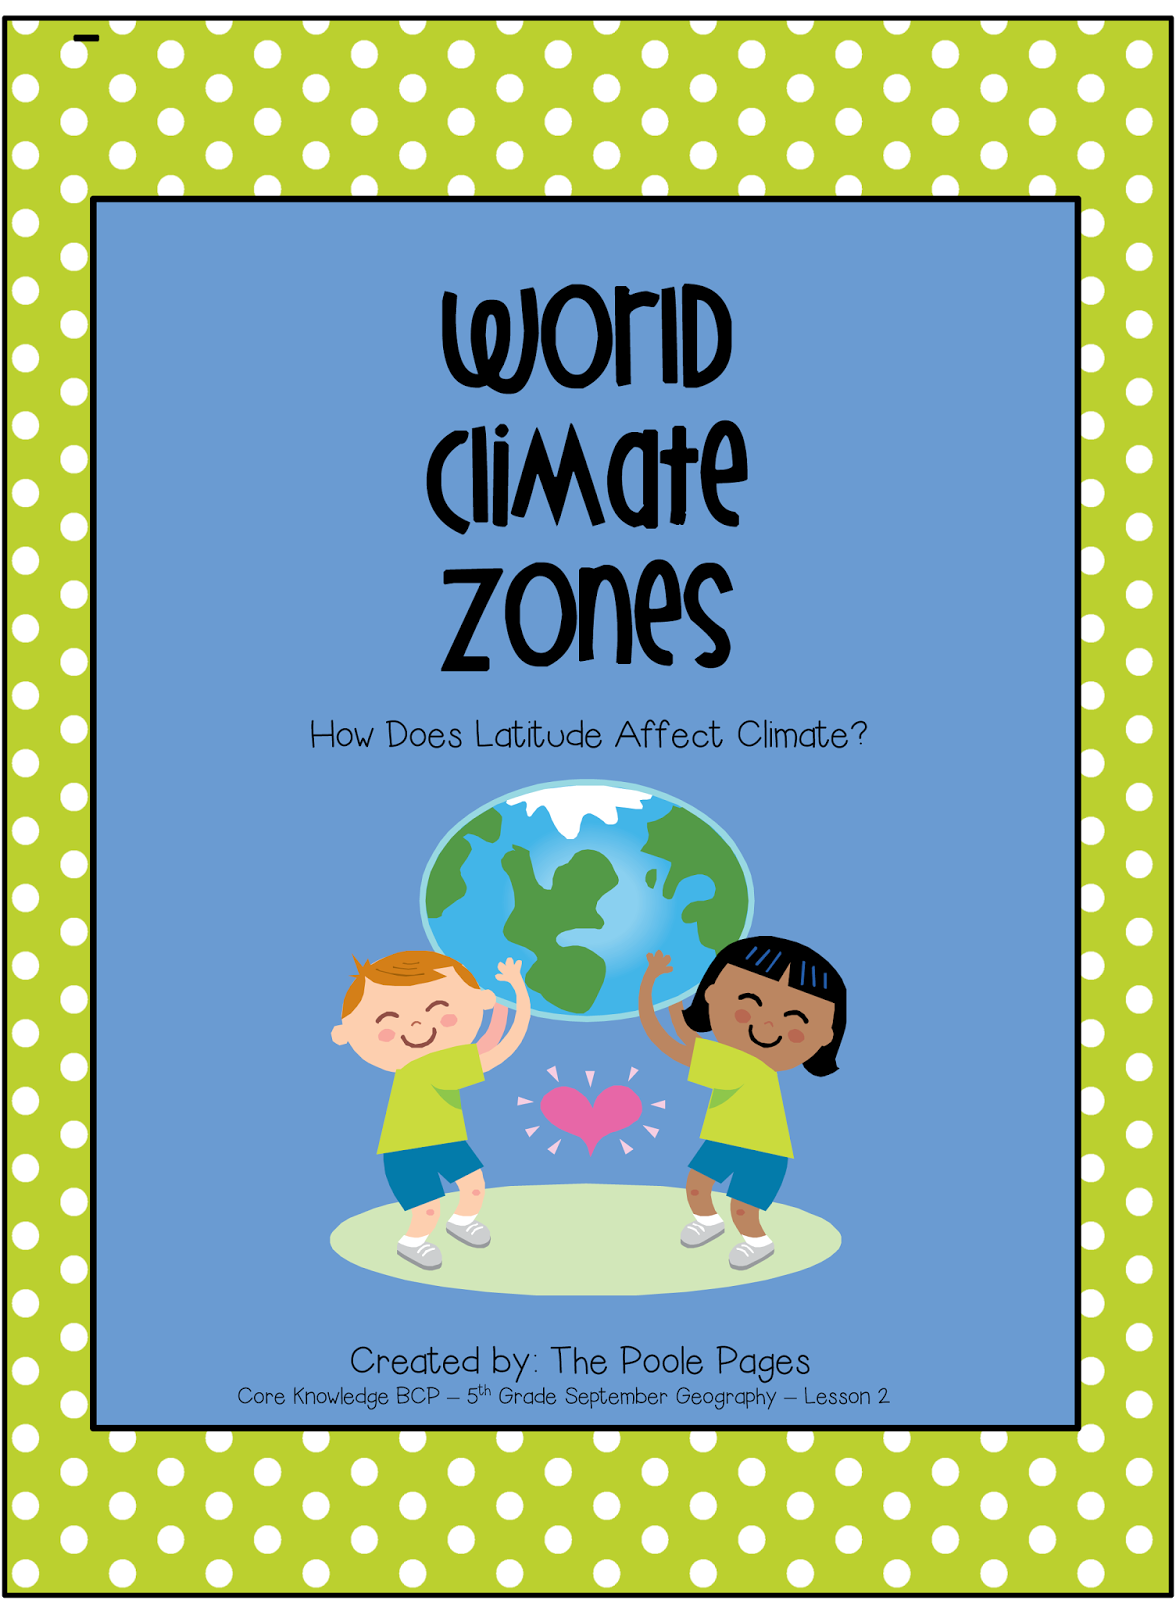 http://www.teacherspayteachers.com/Product/World-Climate-Zones-1335346